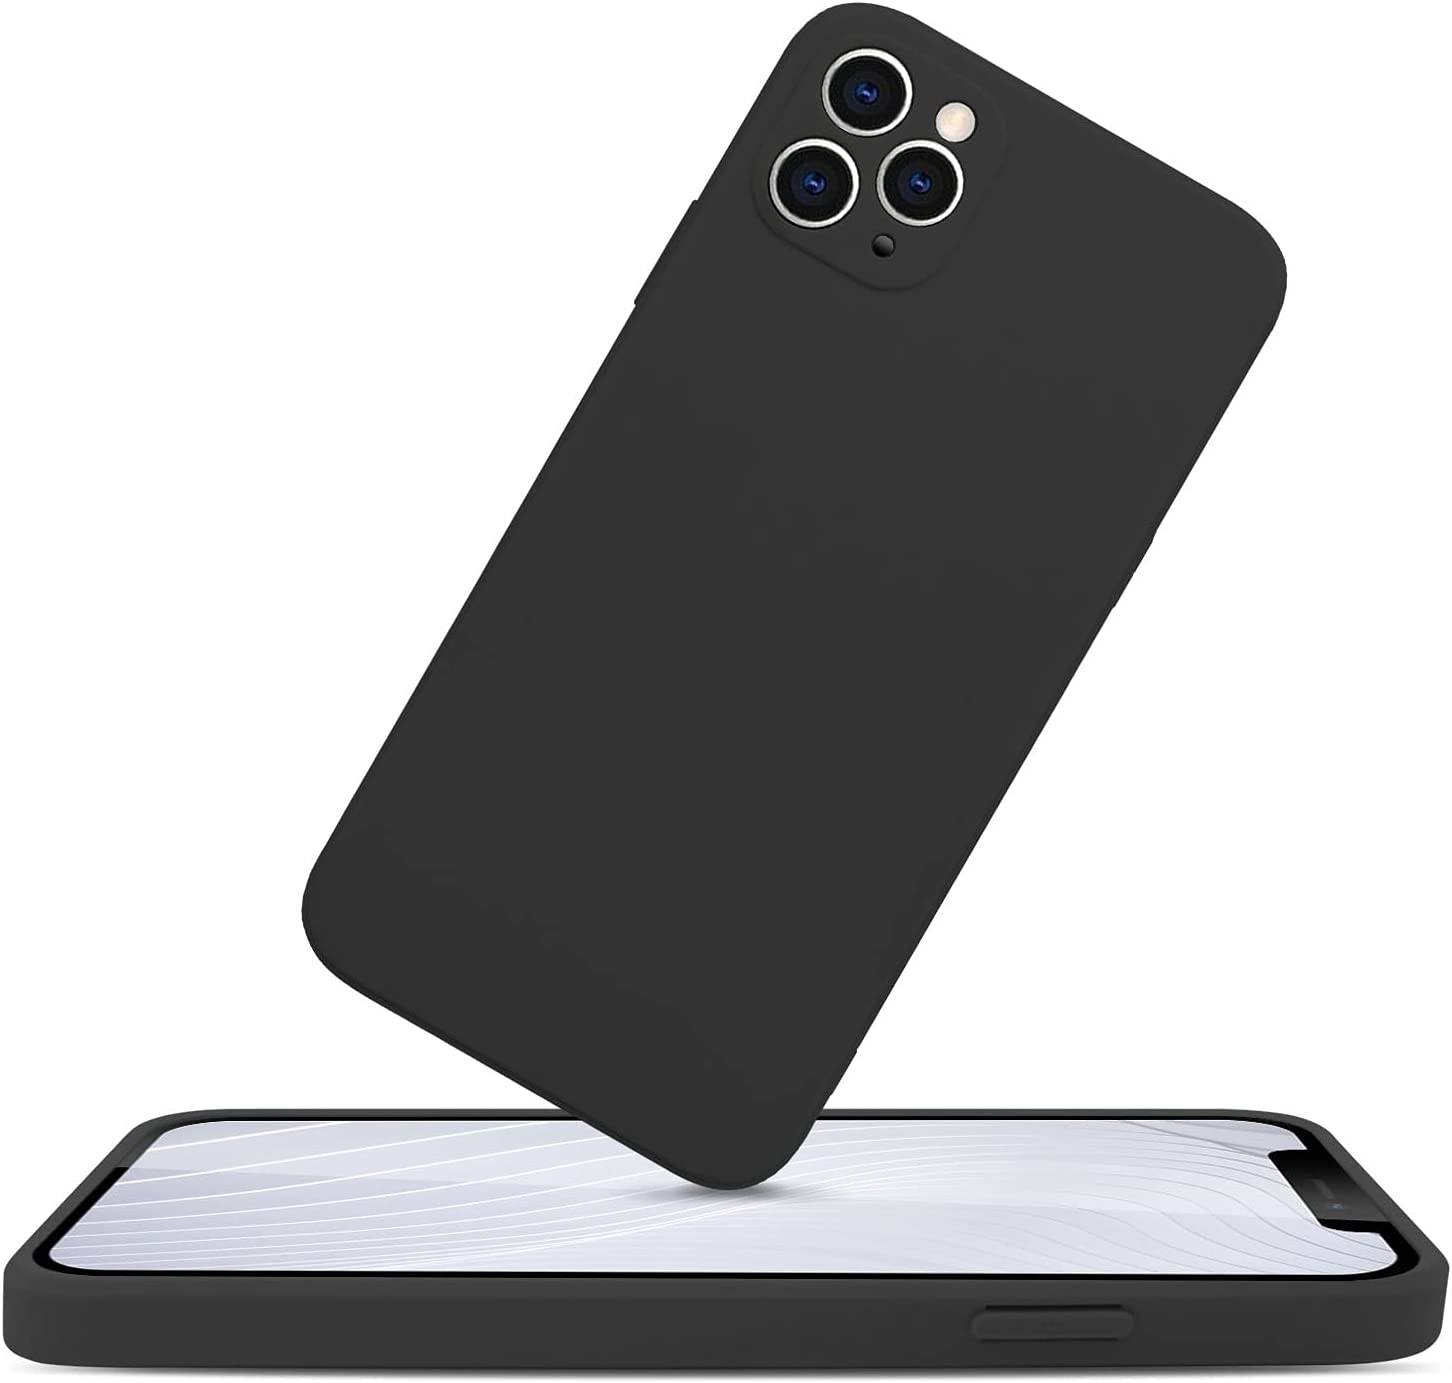 PIGLULOO iPhone 11 Pro Max Mobile Phone Case (Protective & Anti Scratch£for iPhone 11 Pro Max Phone Model Black